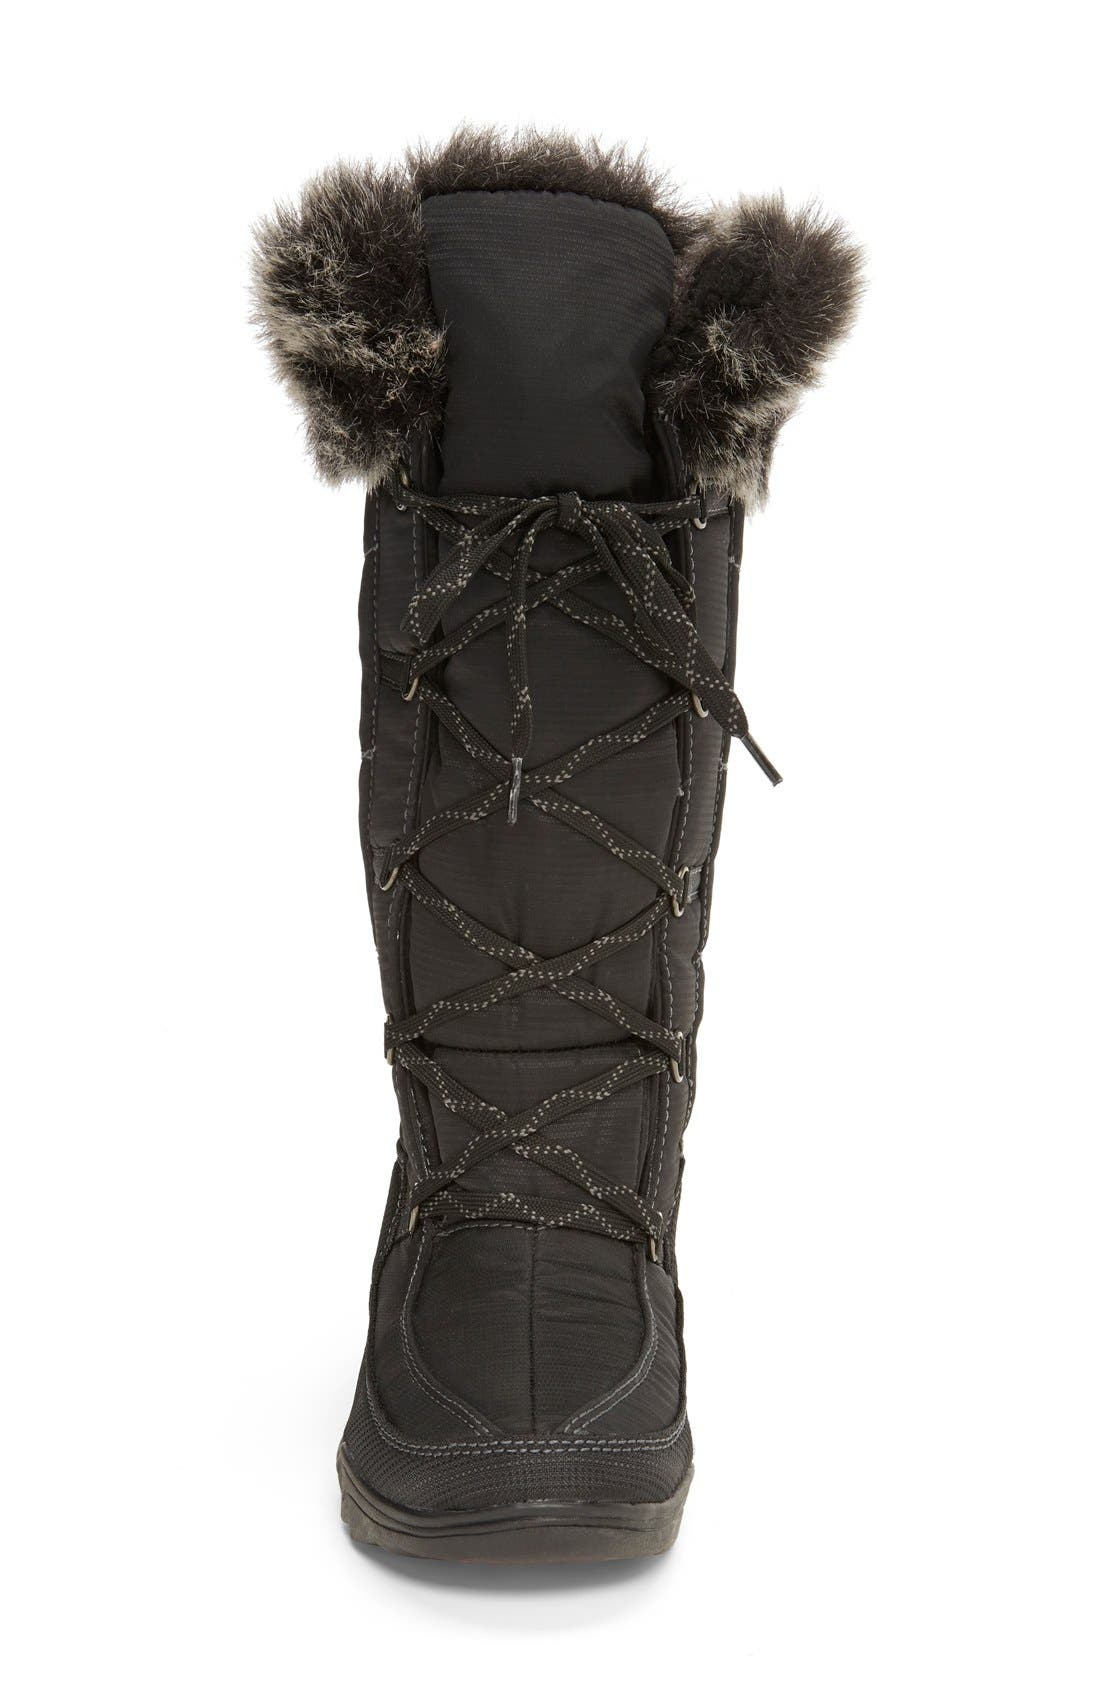 Alternate Image 3  - Kamik 'Porto' Waterproof Winter Boot (Women)